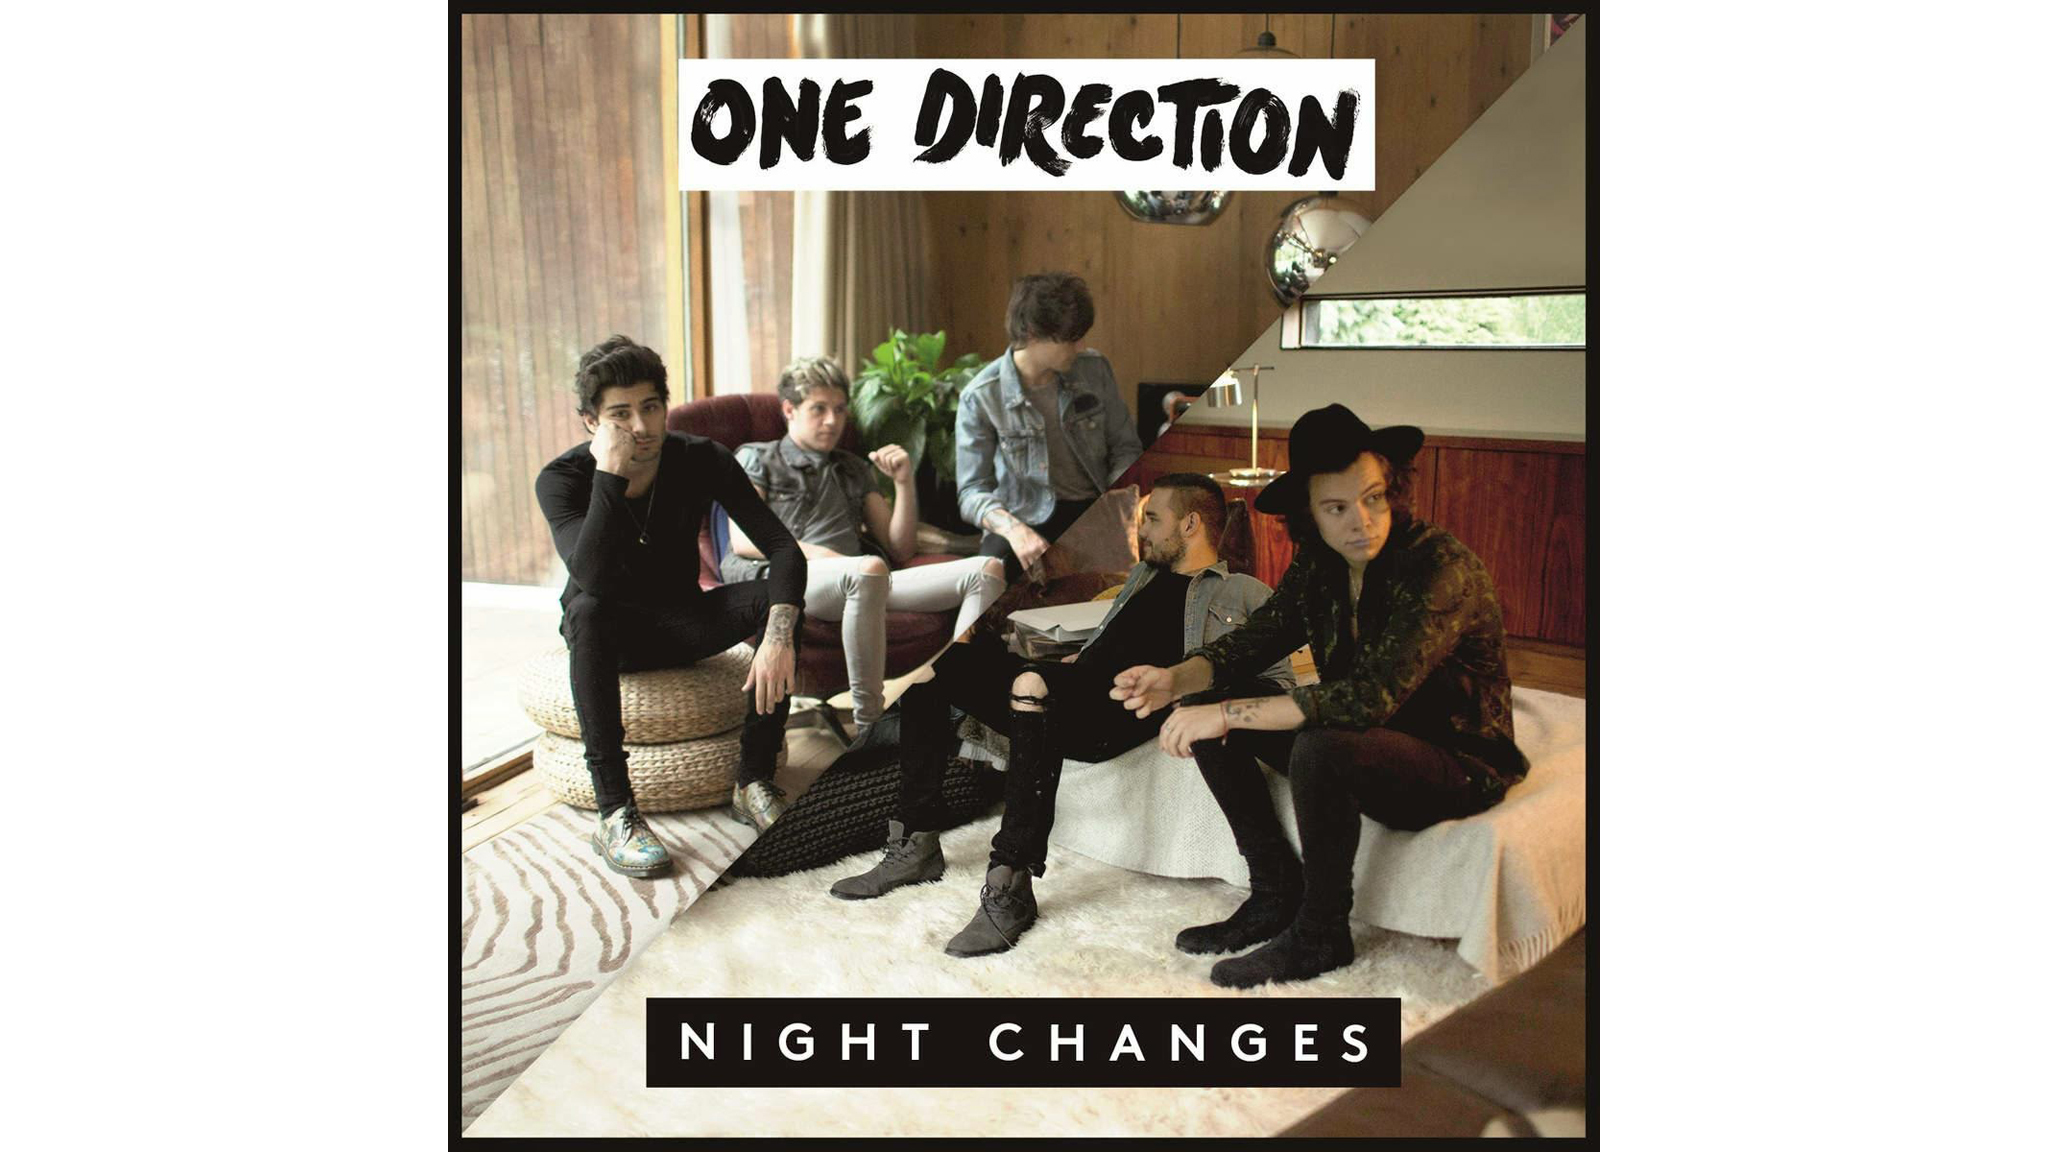 Night changes, one direction